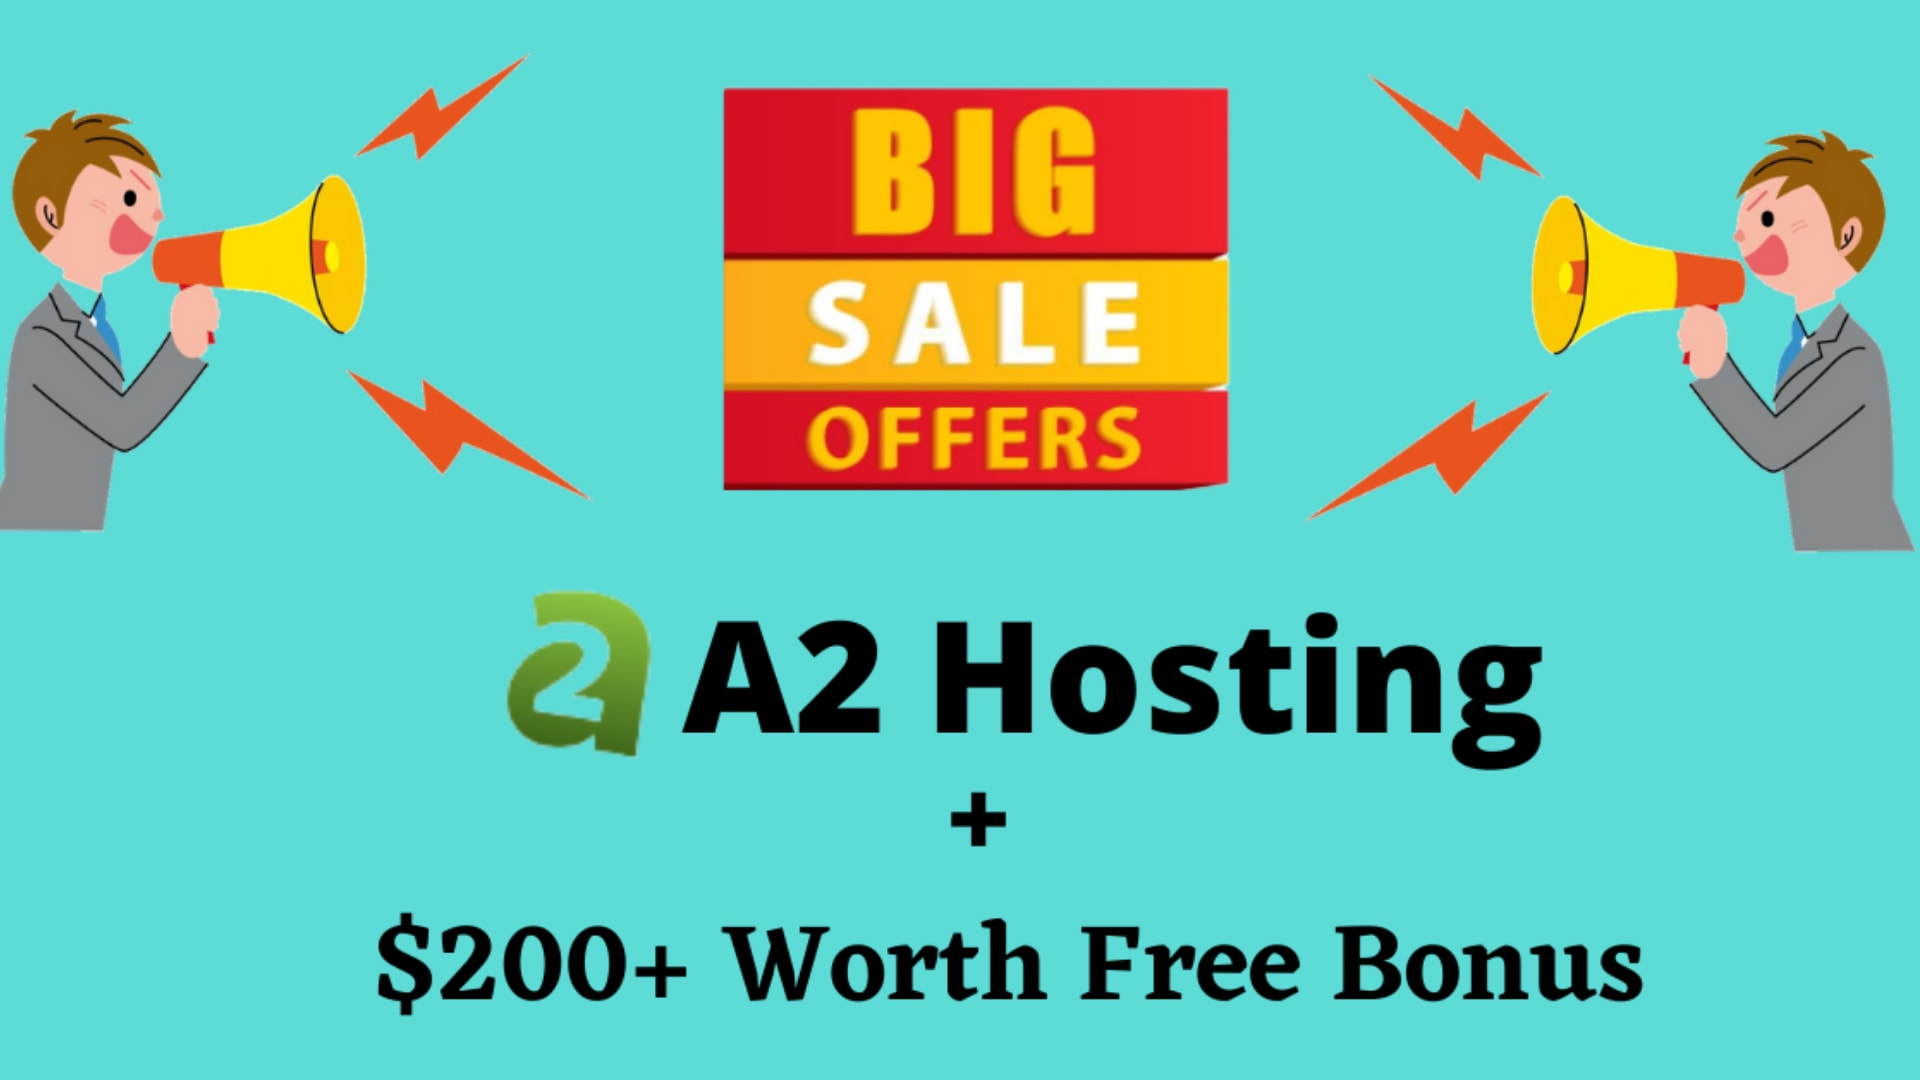 A2 hosting sale 66% off with special bonus